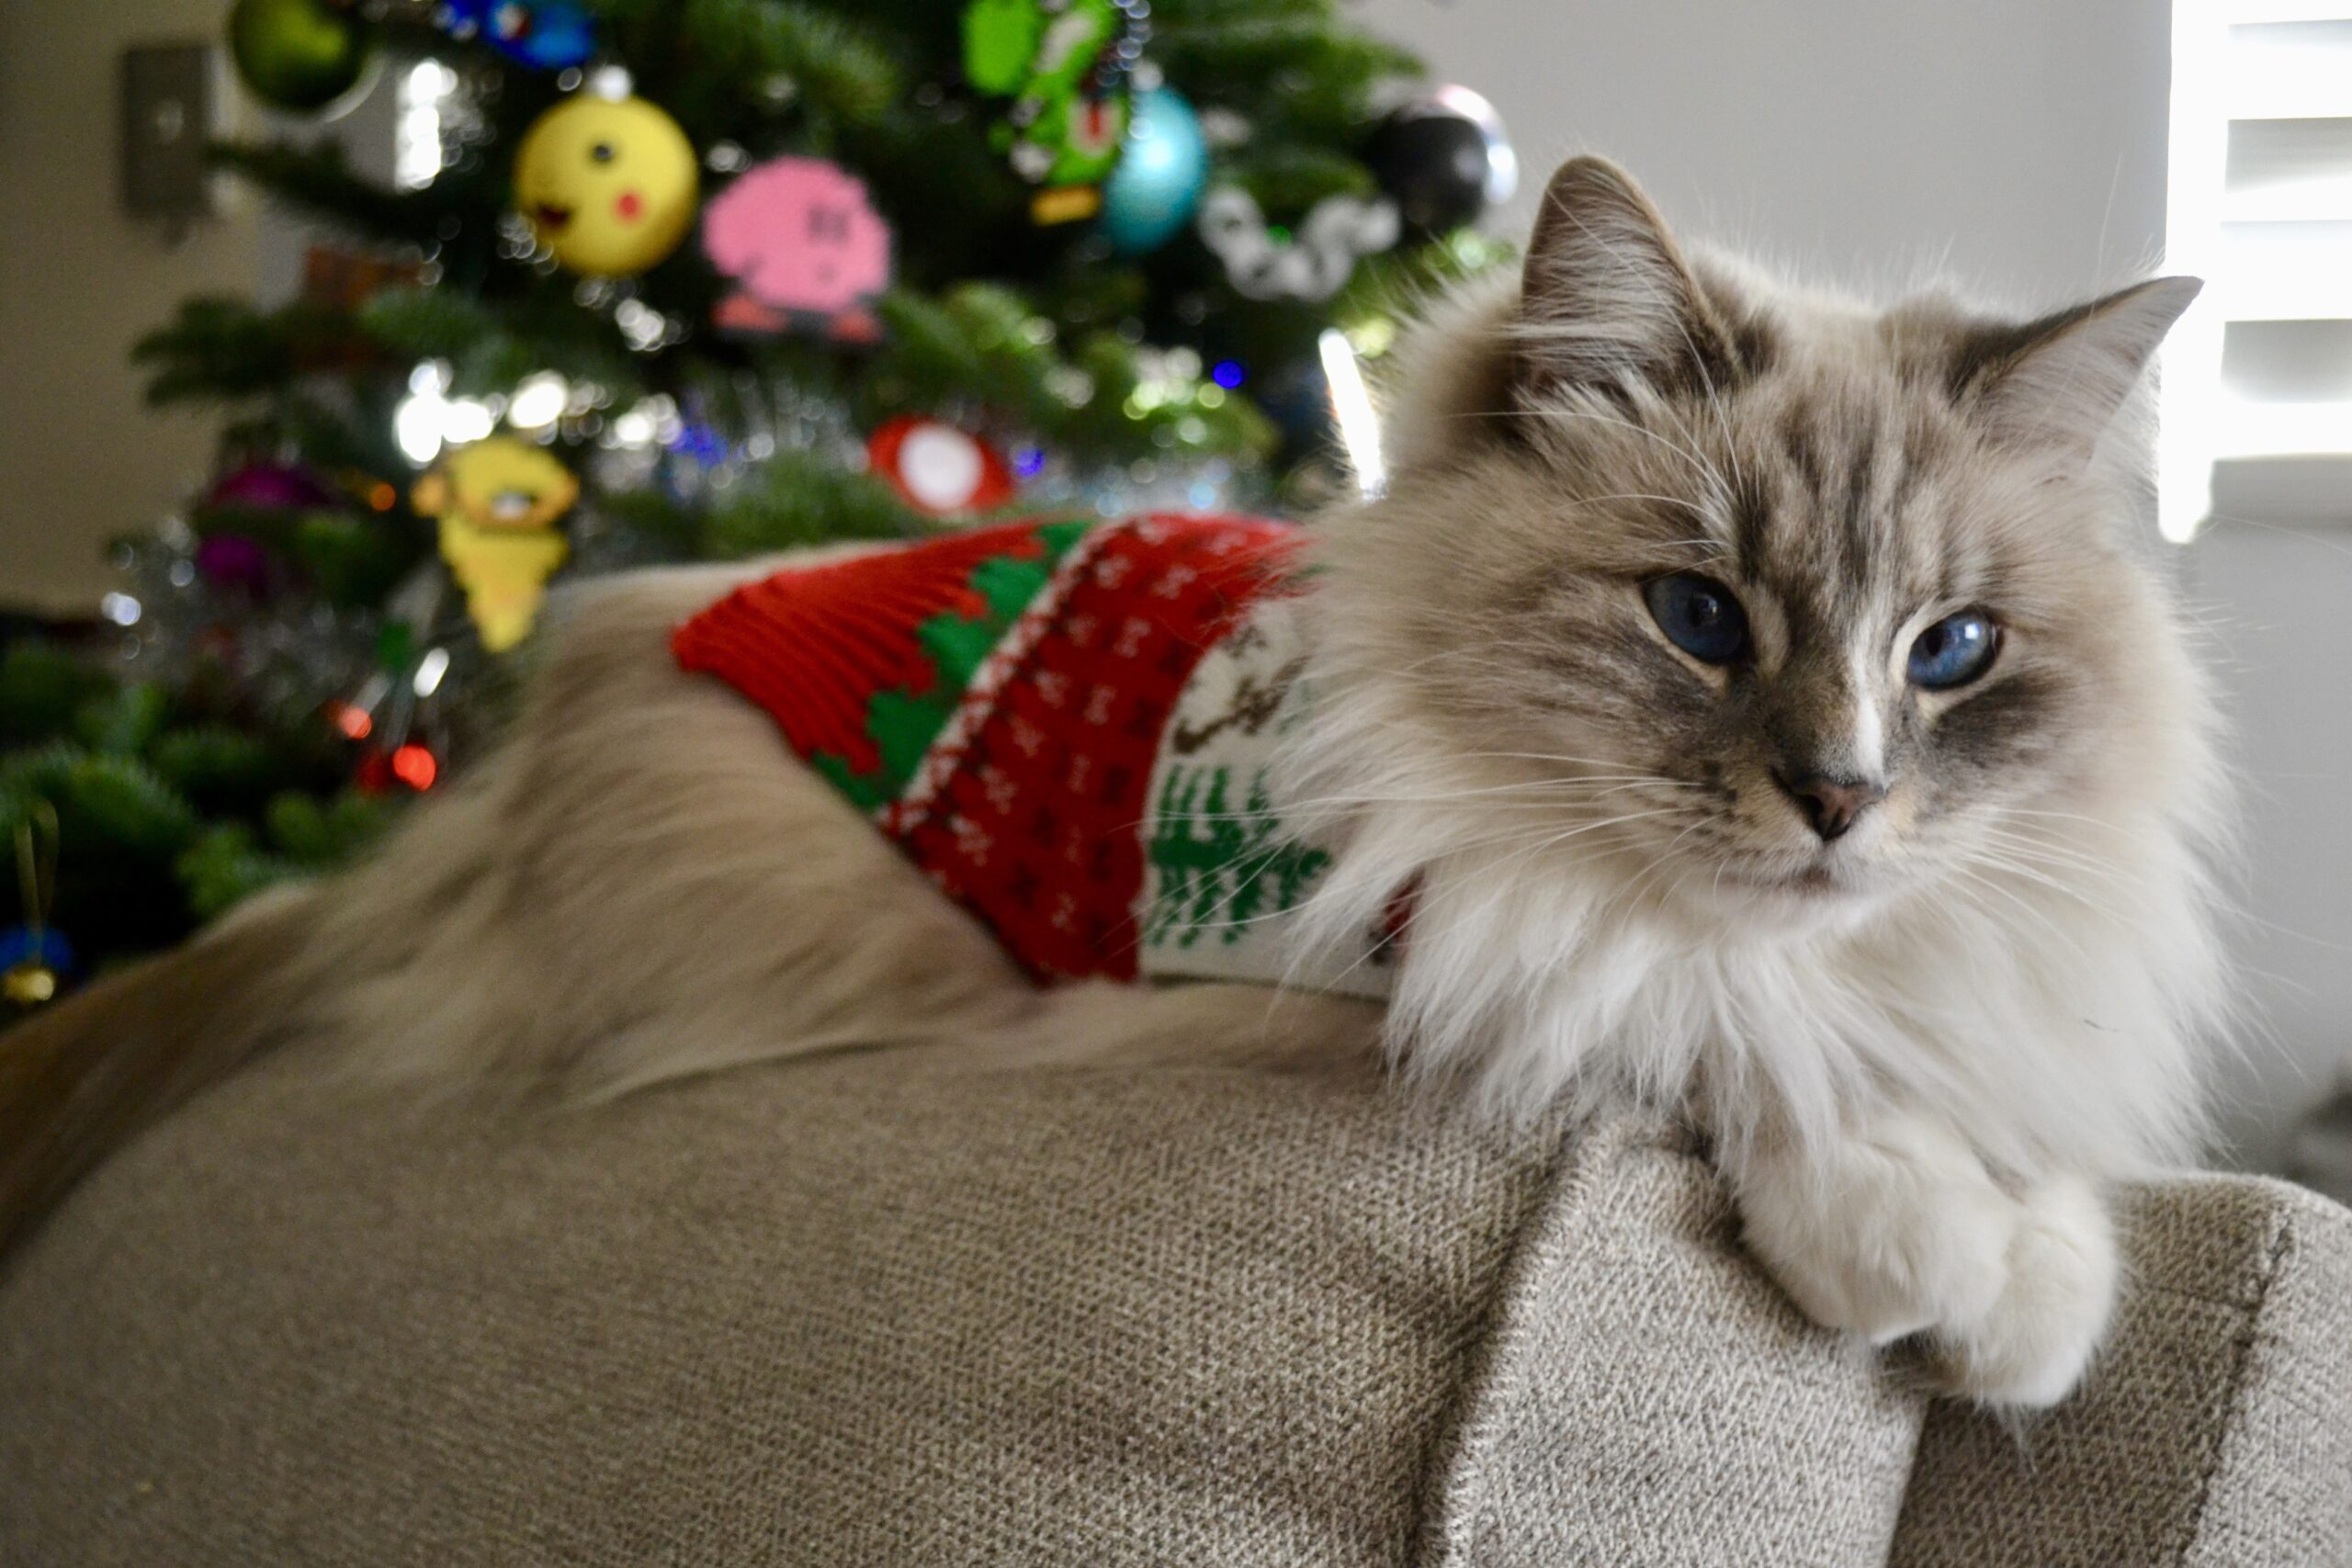 Ragdoll cat in Christmas sweater